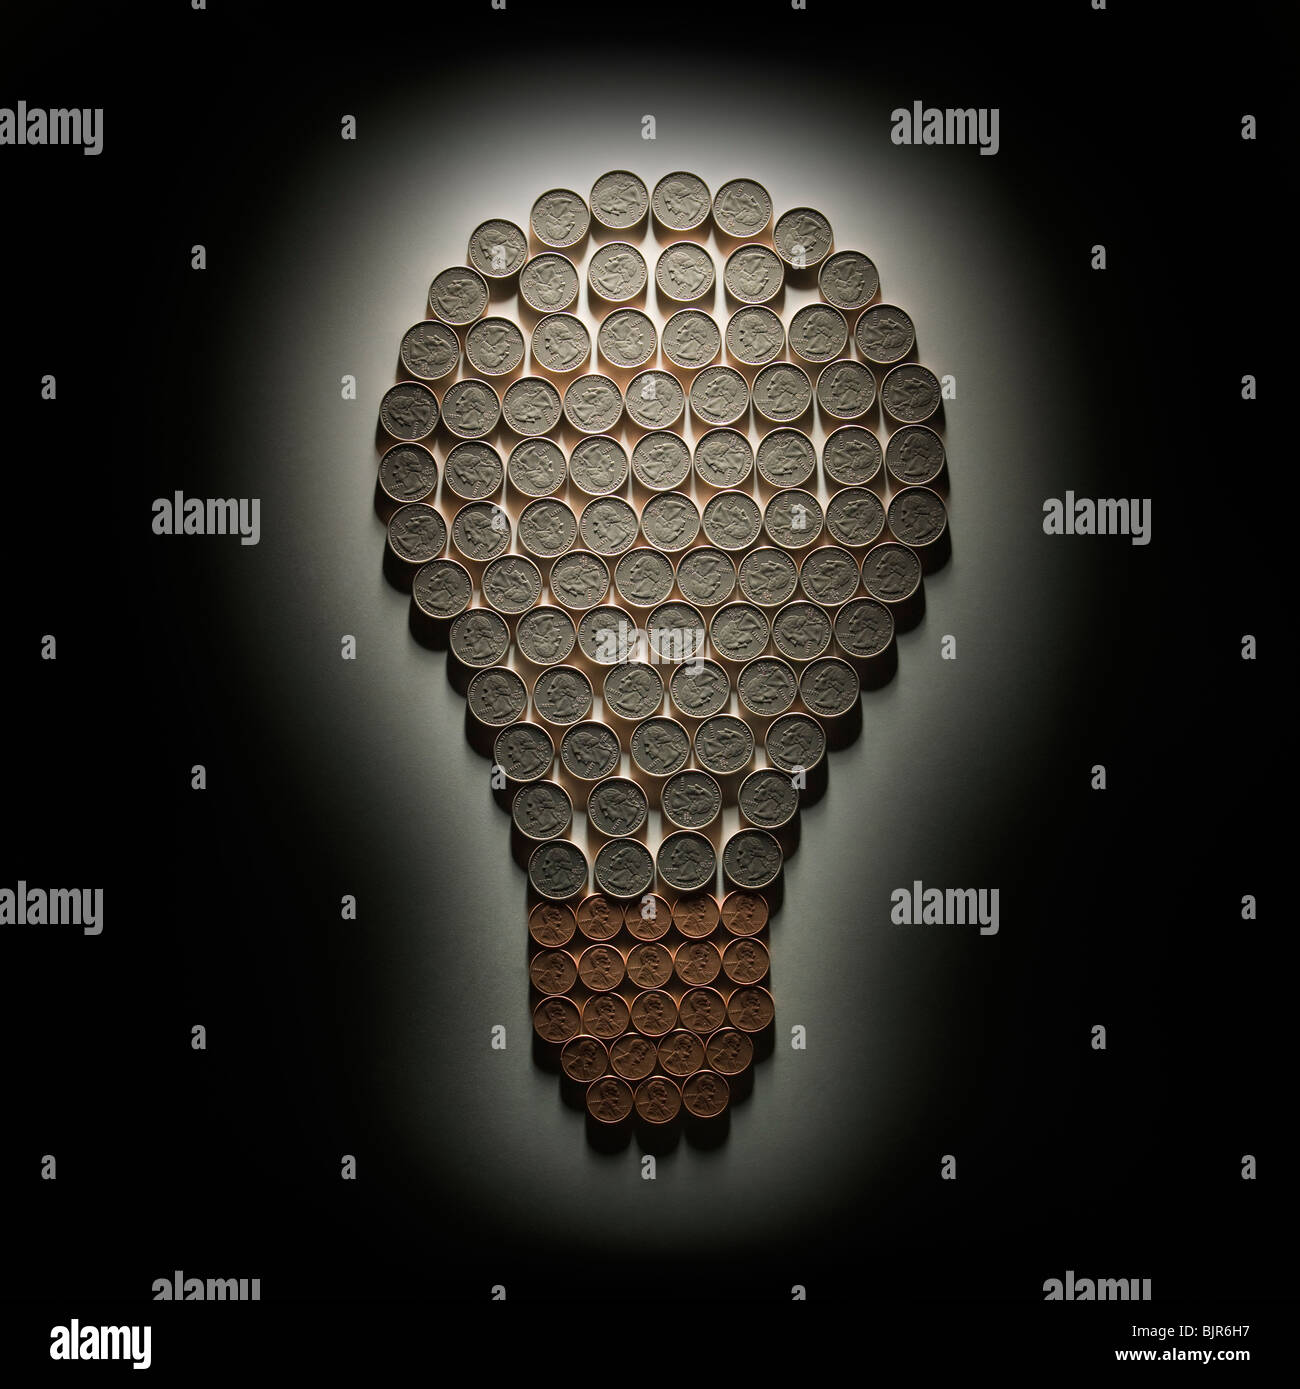 light bulb made out of dimes and pennies - Stock Image